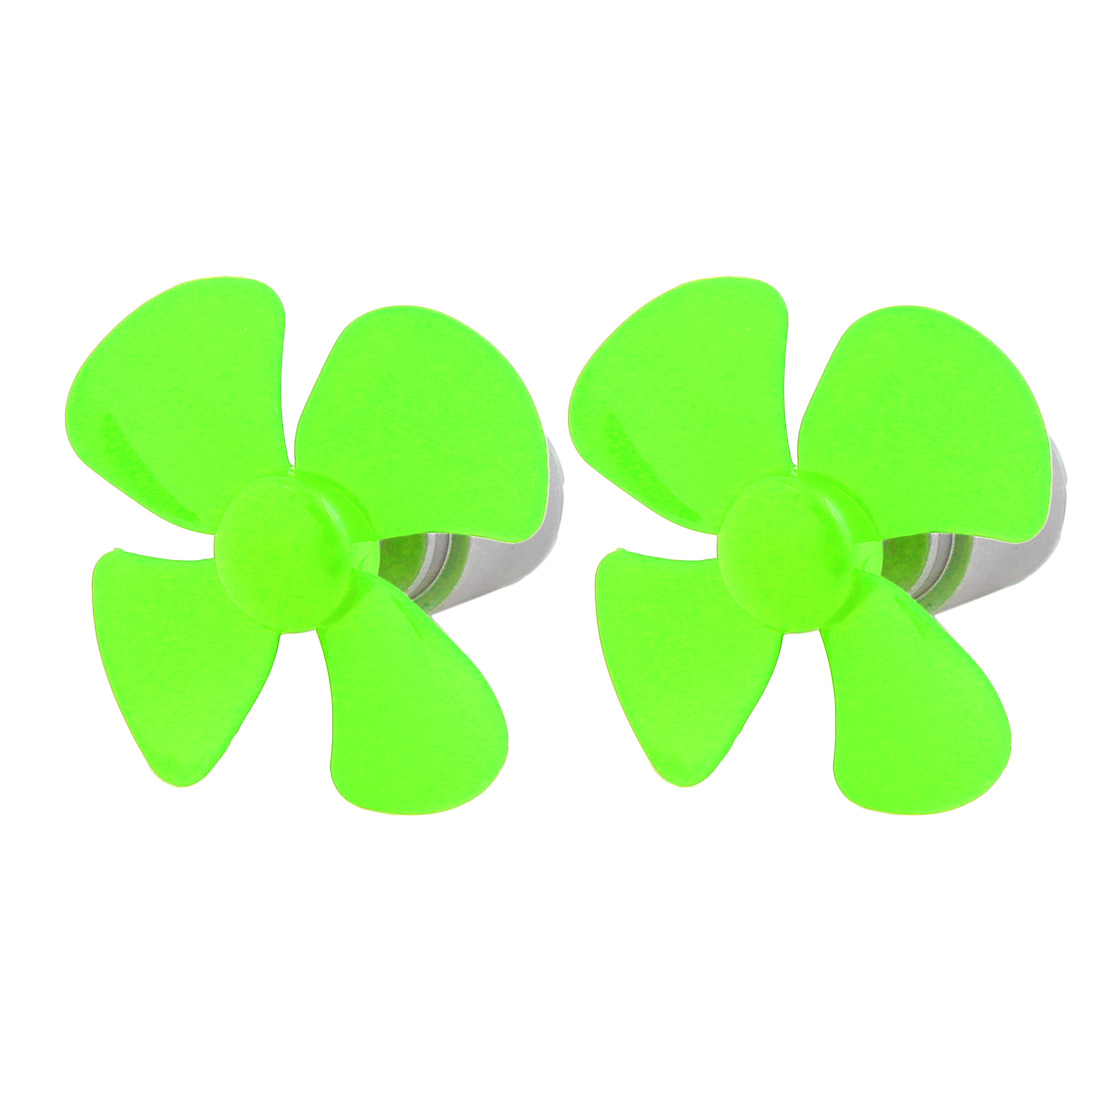 2pcs DC 3V 0.13A 16500RPM Green Strong Force Motor 4 Vanes 56mm Dia Propeller for RC Aircraft